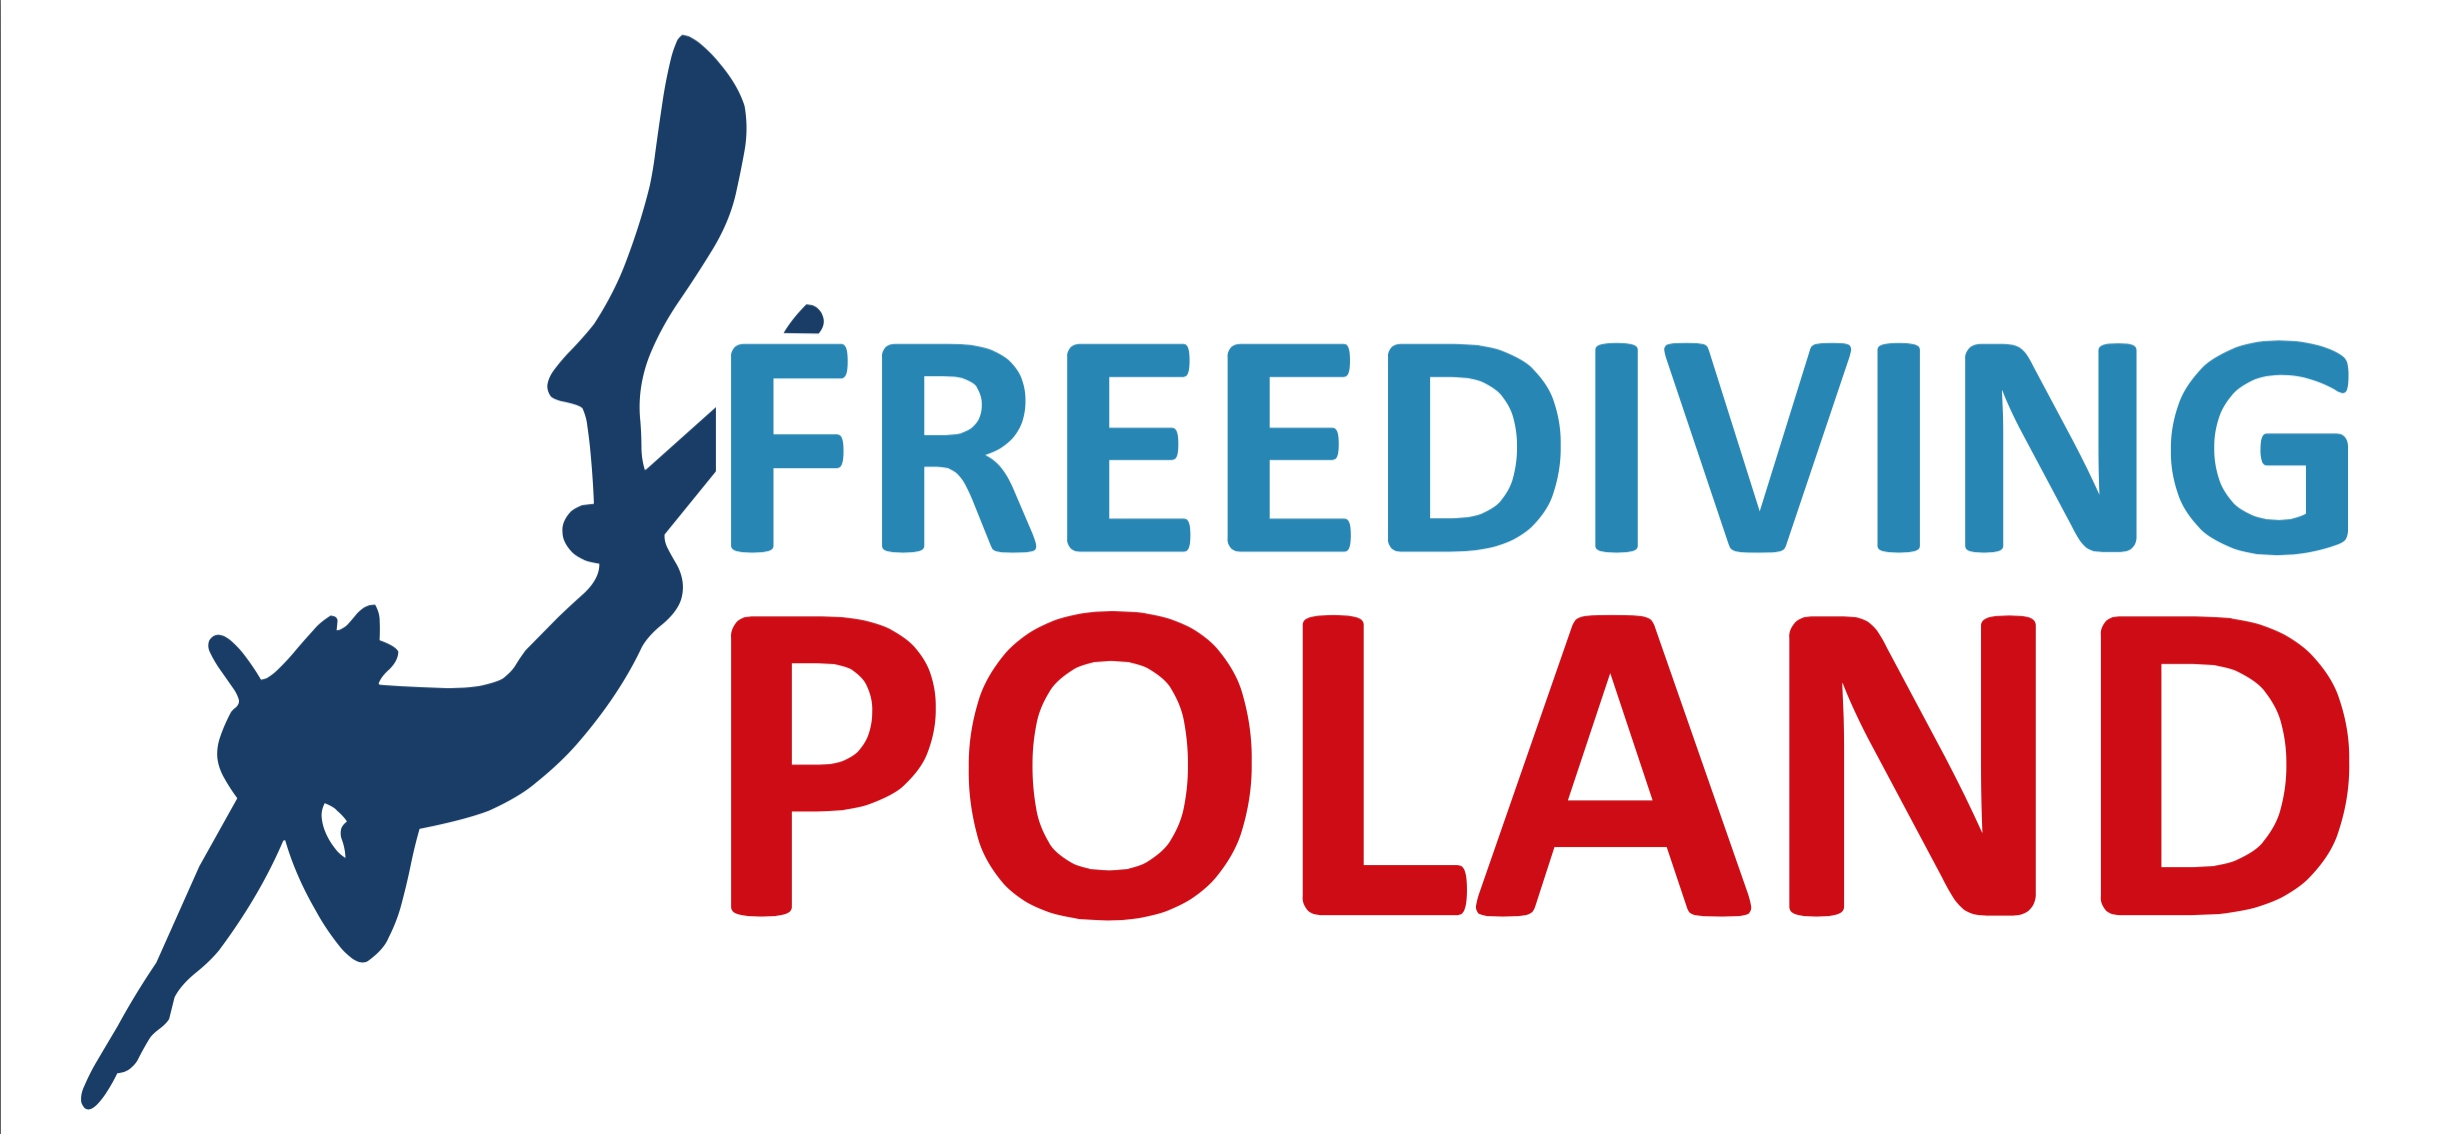 Polish Freediving Association